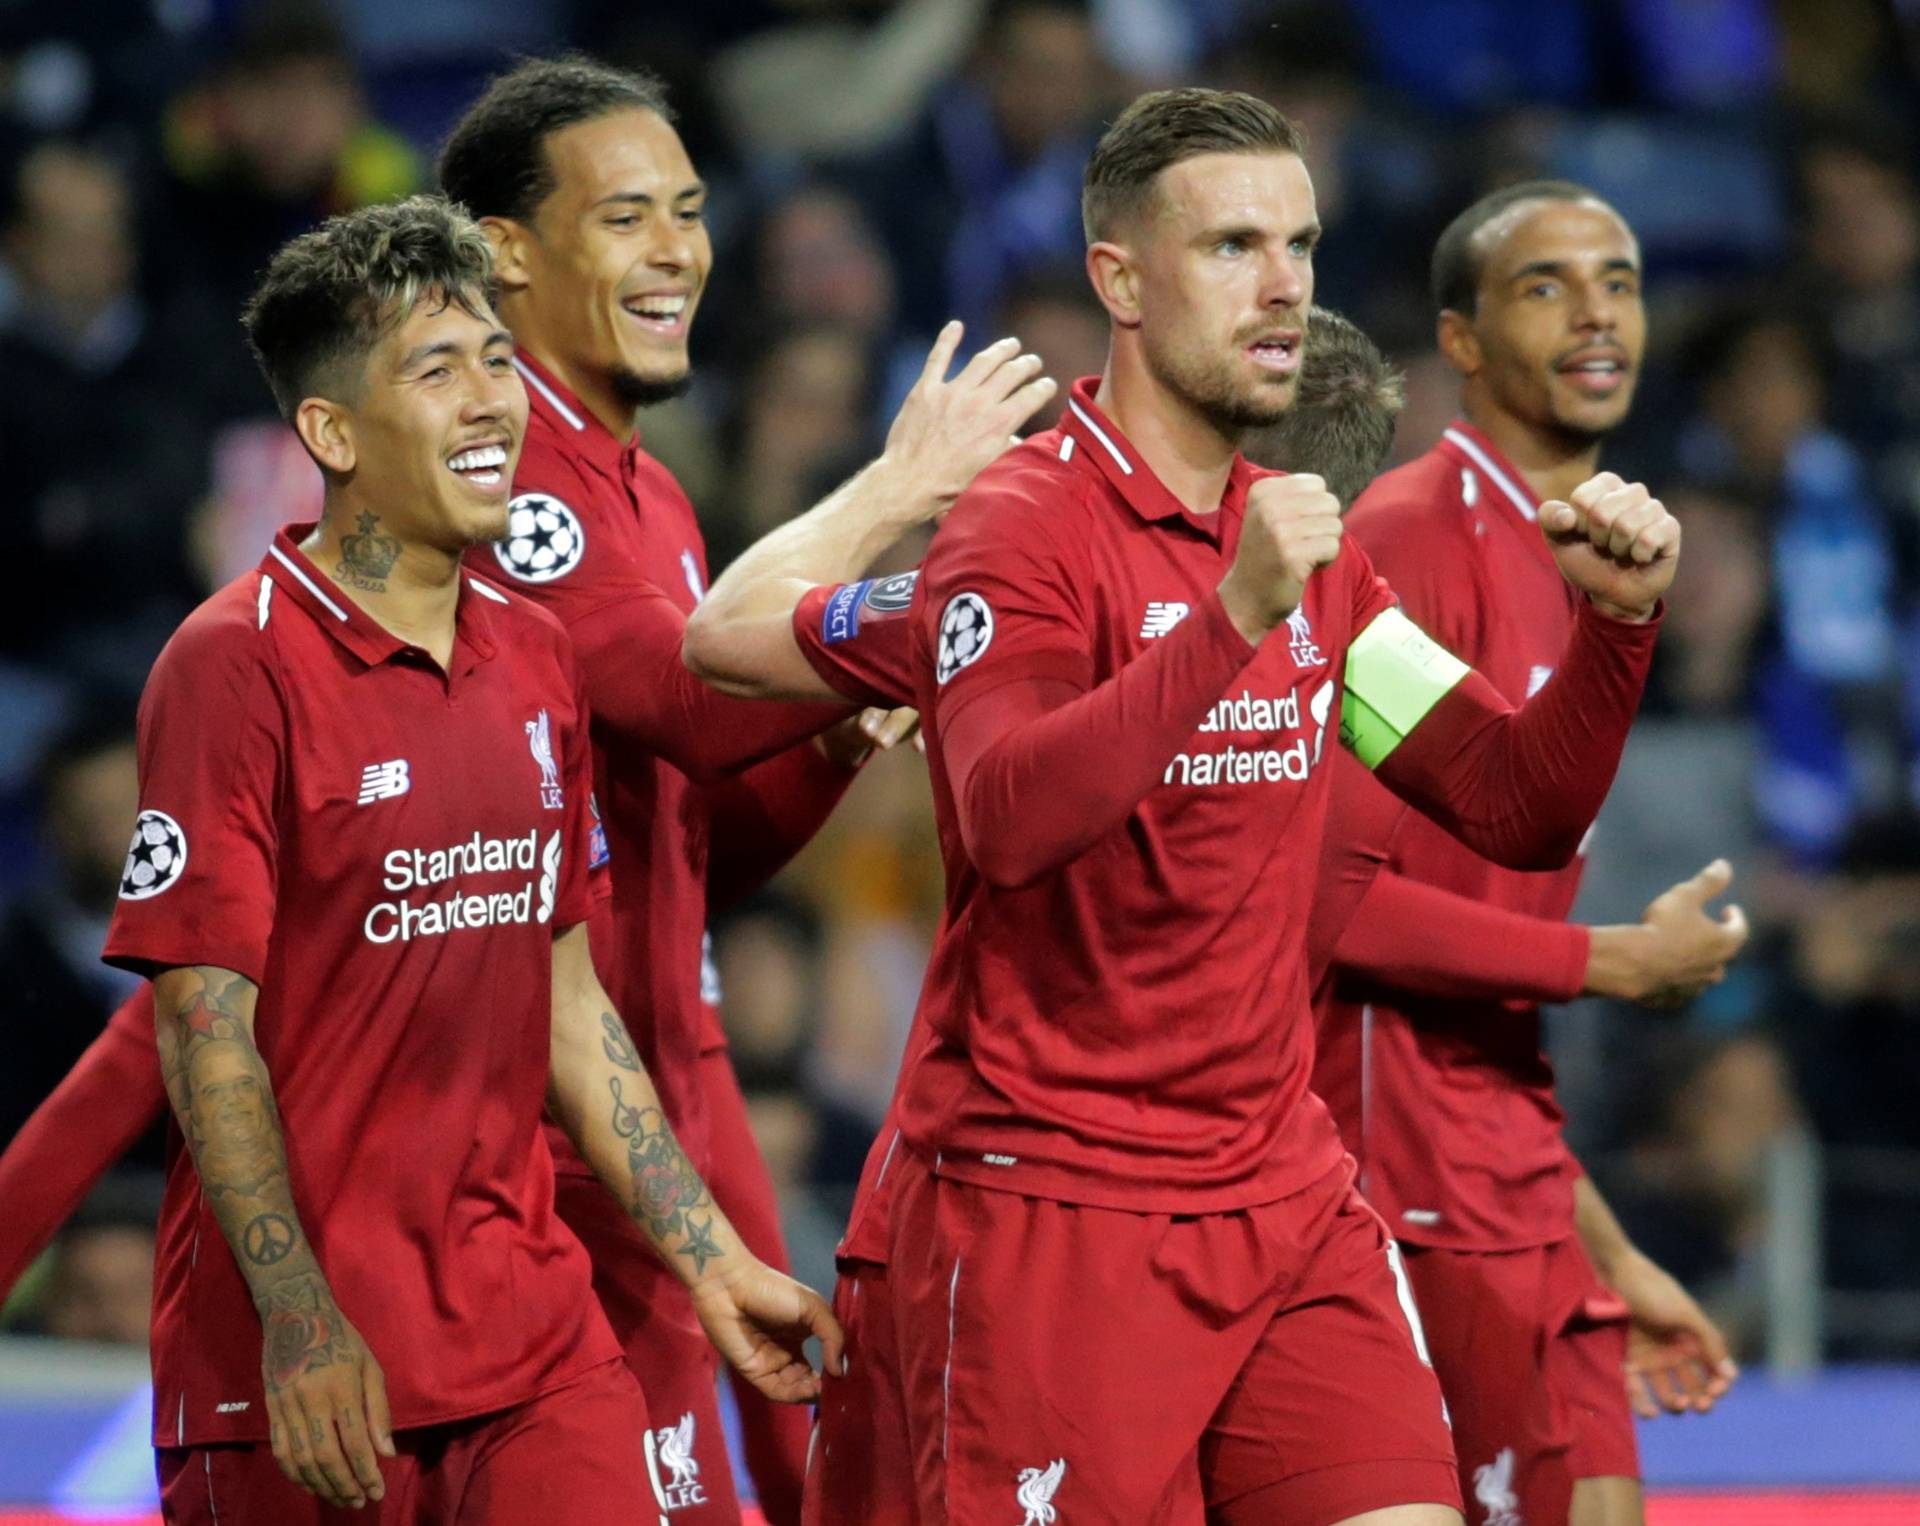 Champions League Quarter Final Second Leg - FC Porto v Liverpool